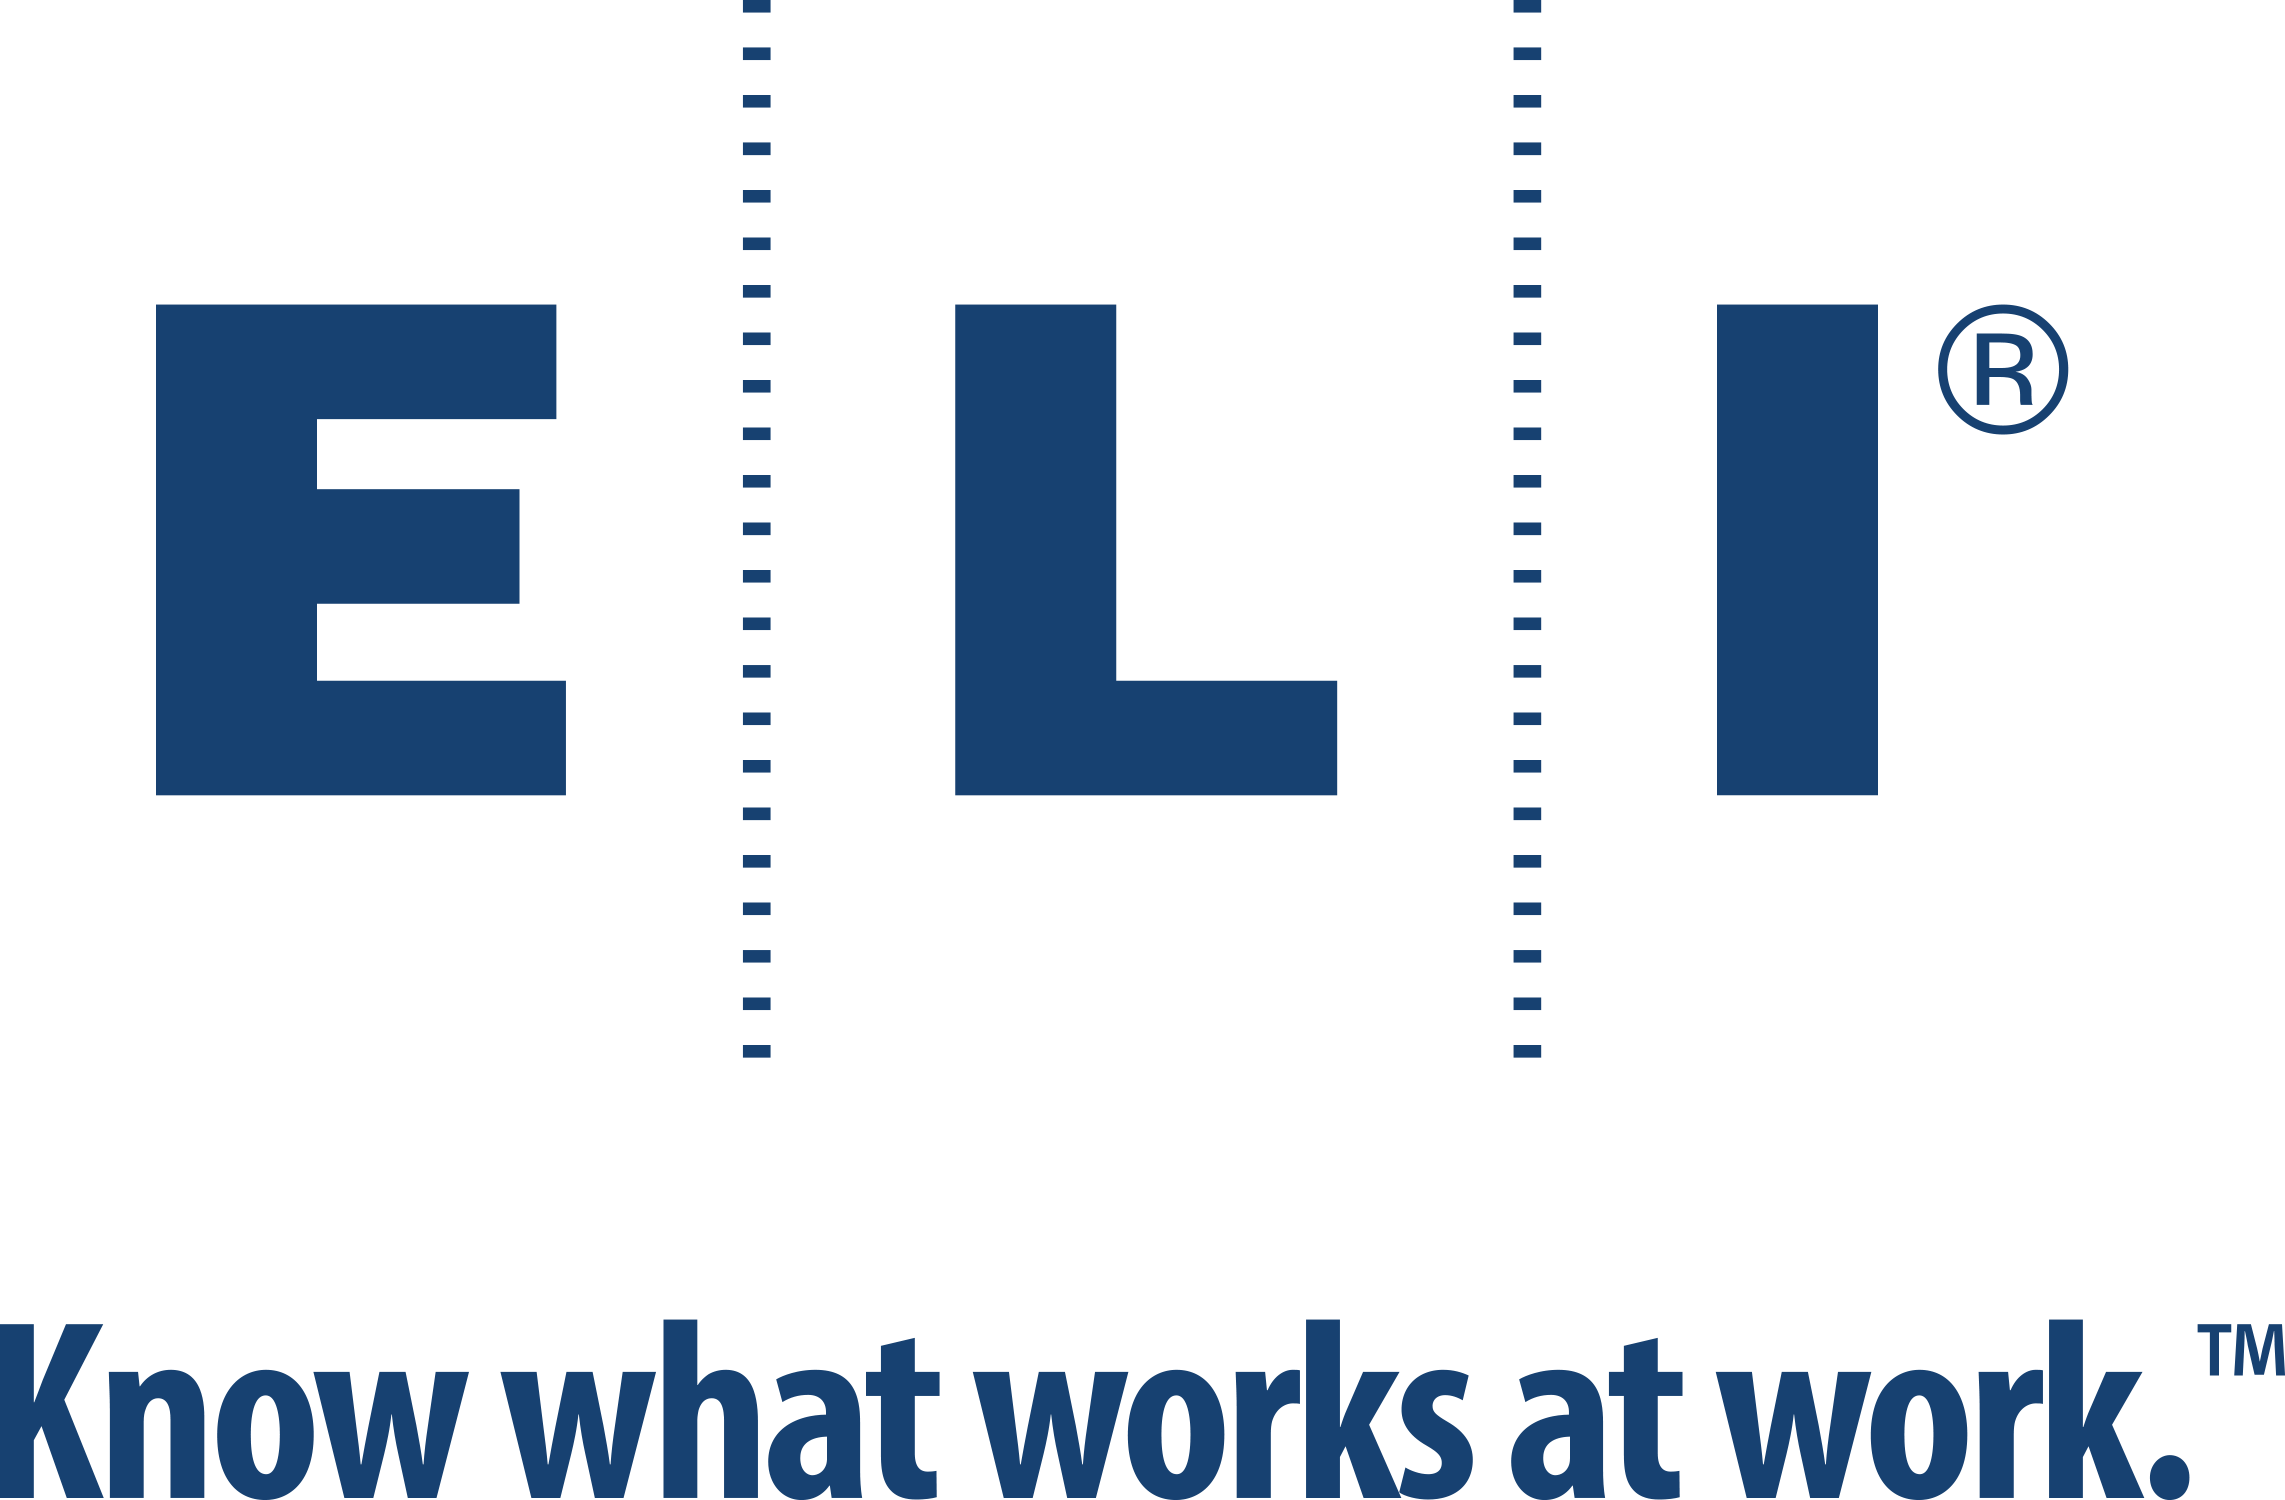 logo-and-tagline-blue-stacked